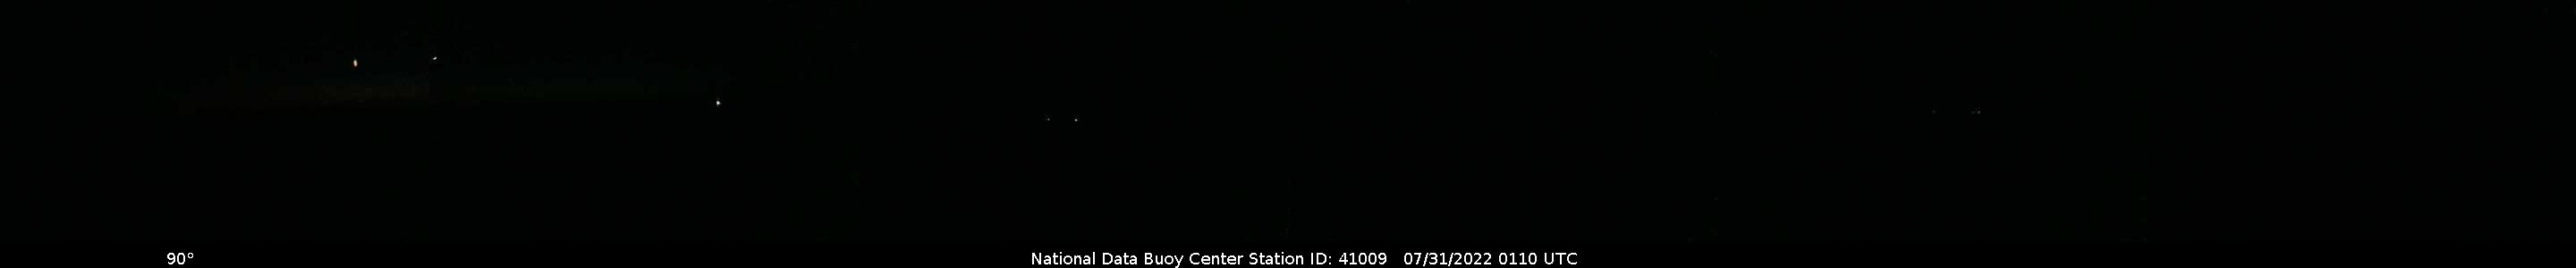 CANAVERAL 20 NM East of Cape Canaveral, FL